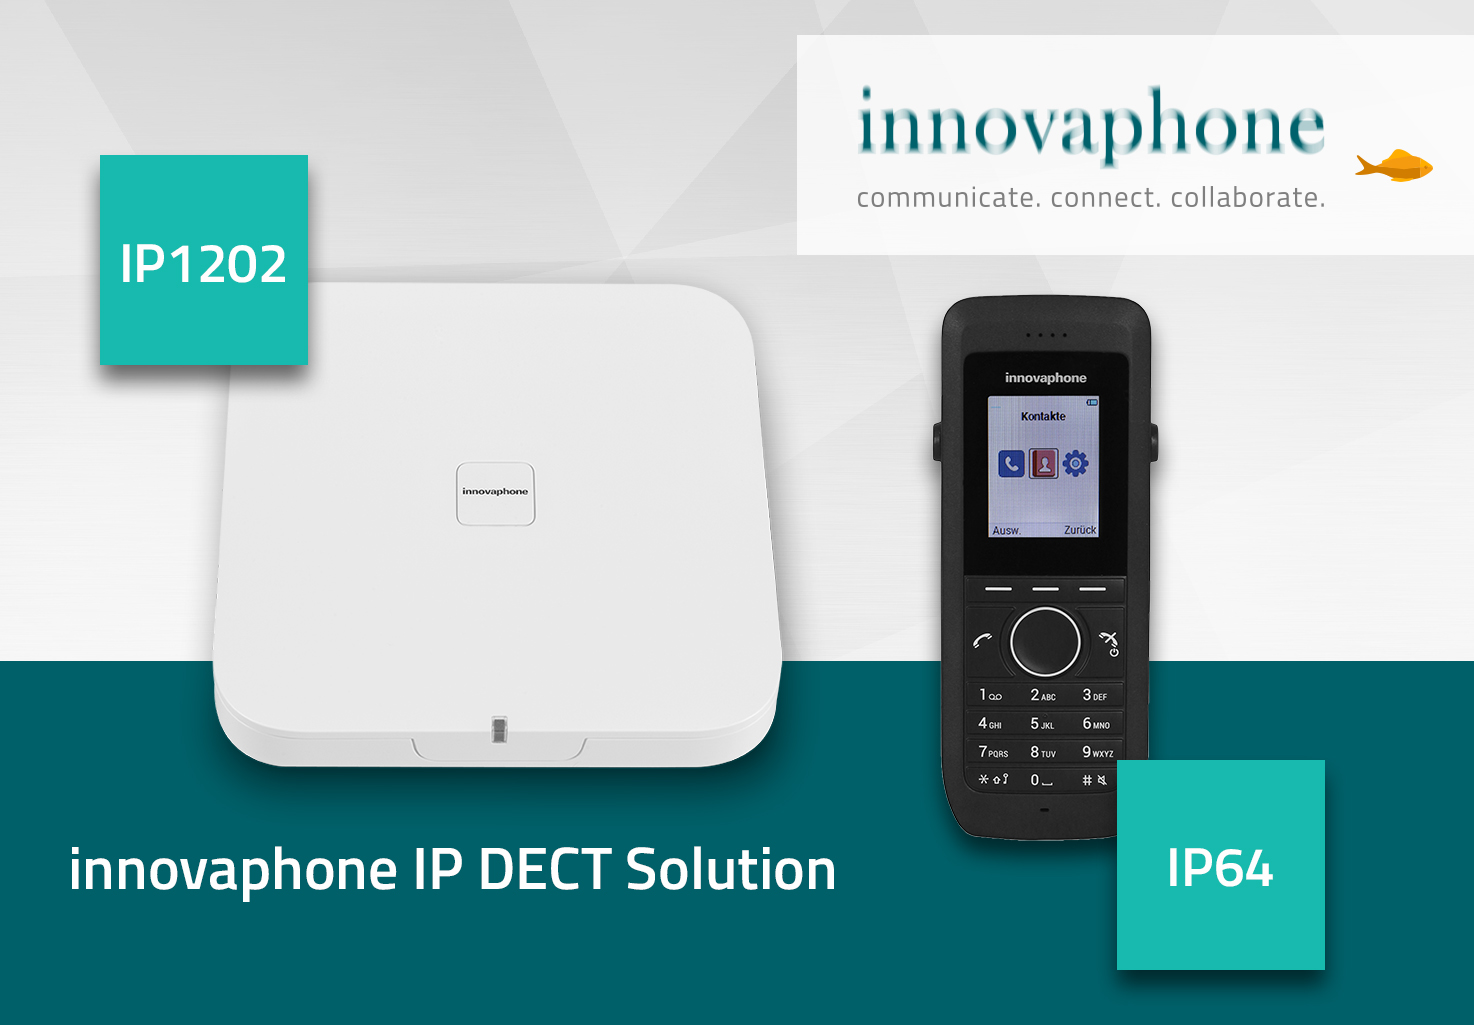 innovaphone Product of the month Oktober 2019 IP64 IP1202 EN